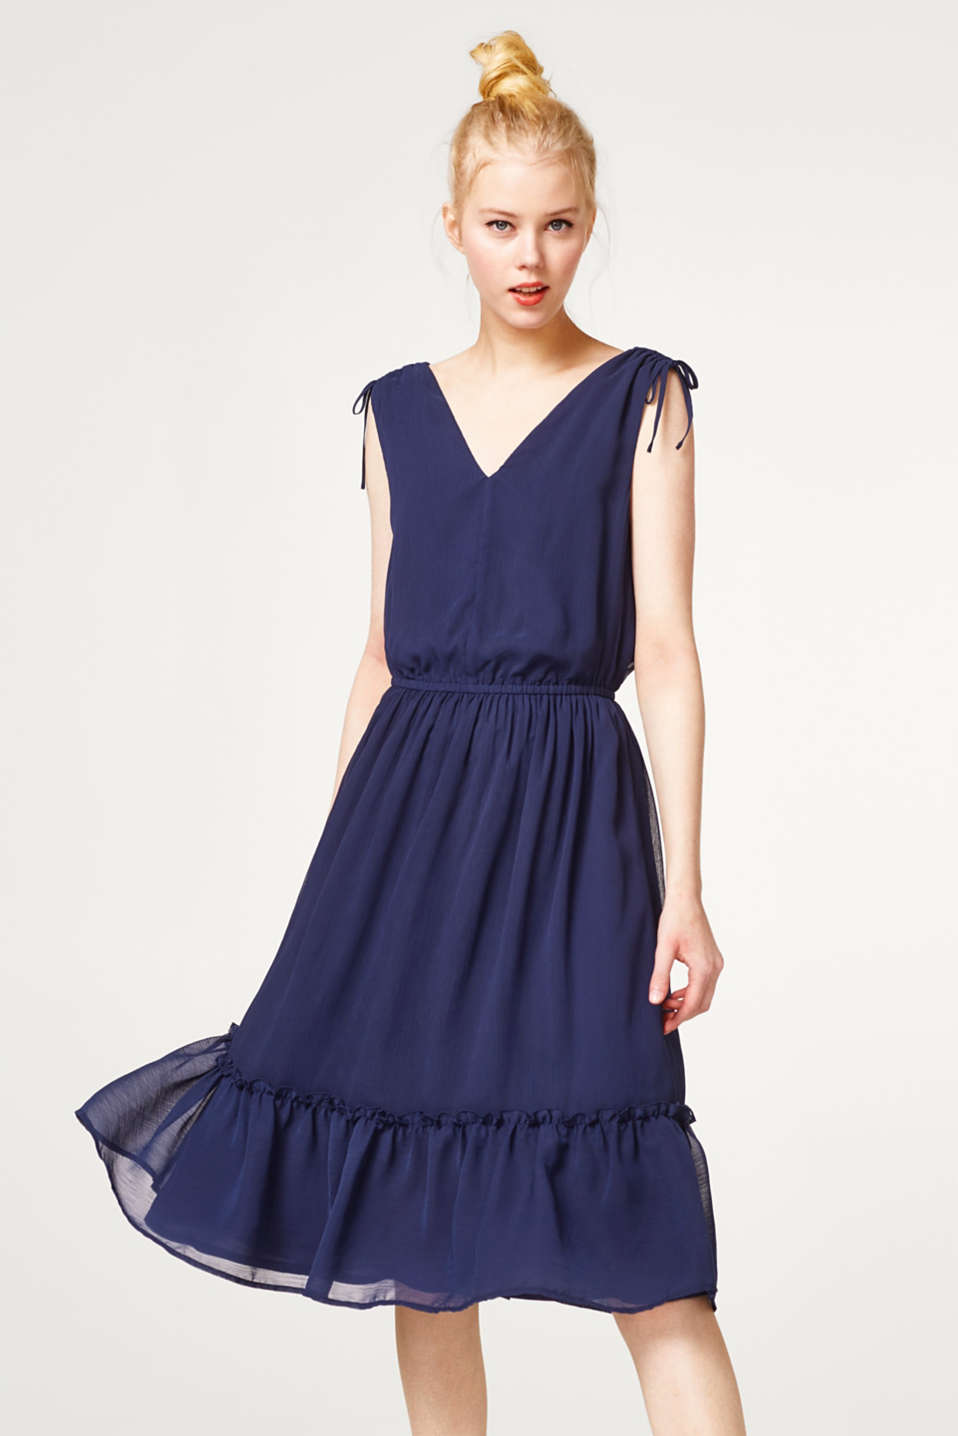 edc - Midi dress in delicate crinkle chiffon